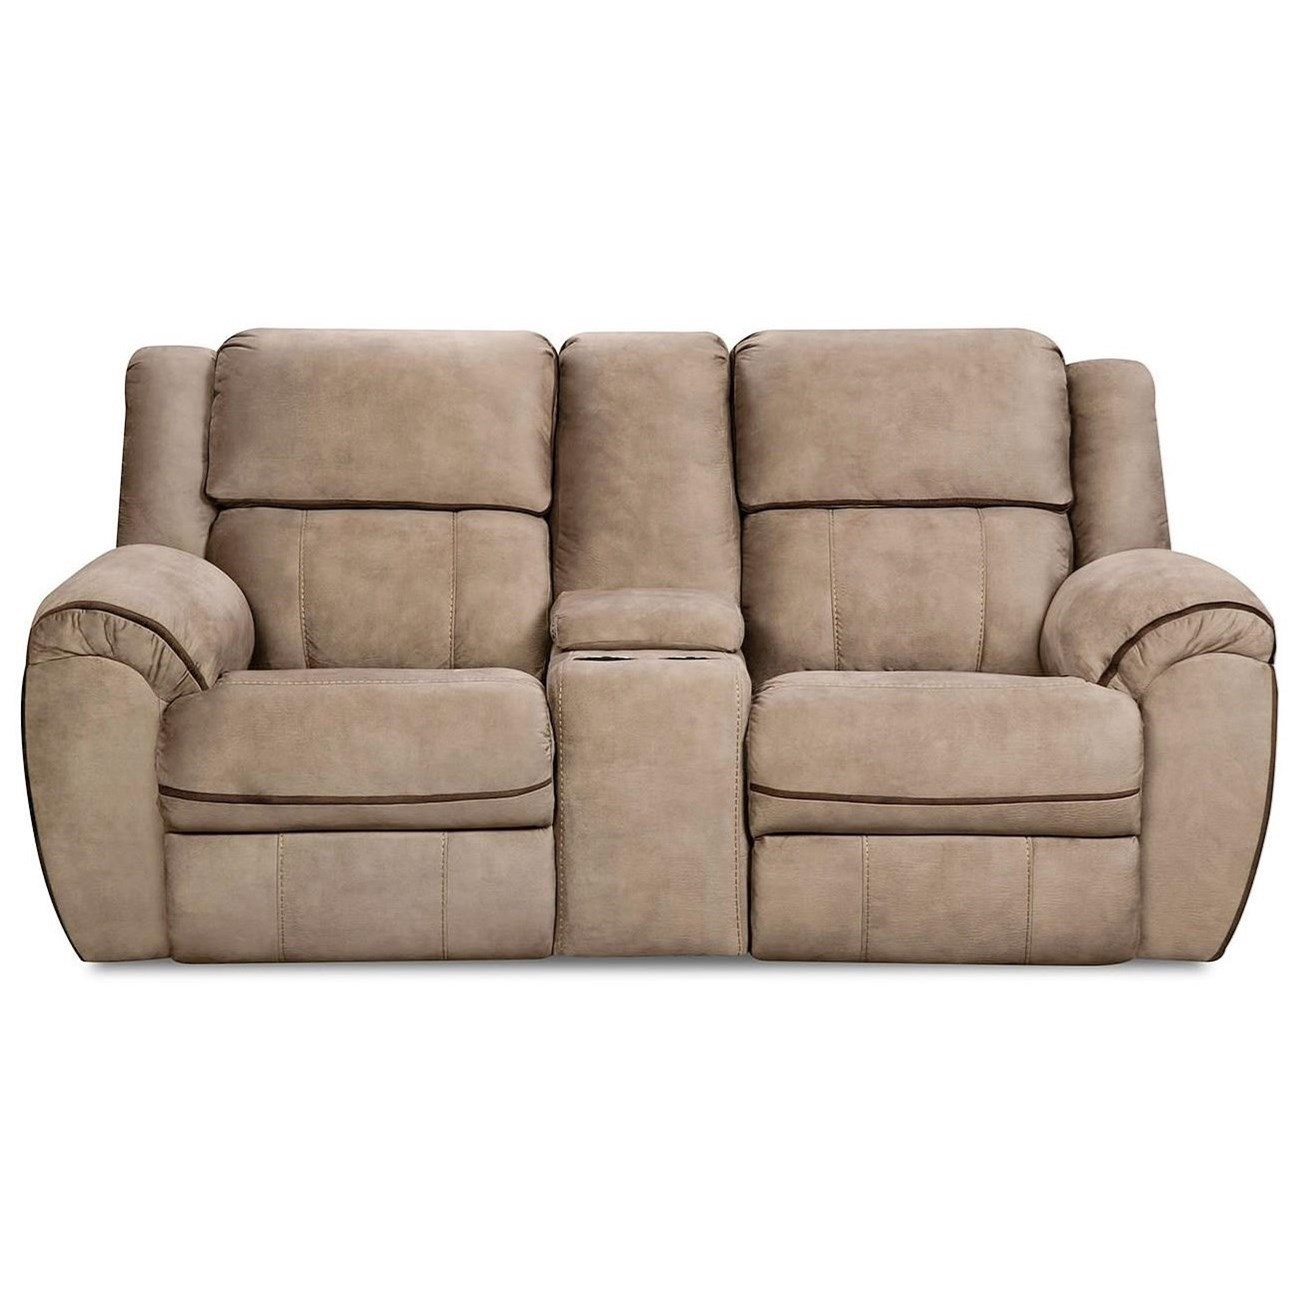 50436BR Power Reclining  Console Loveseat by United Furniture Industries at Bullard Furniture